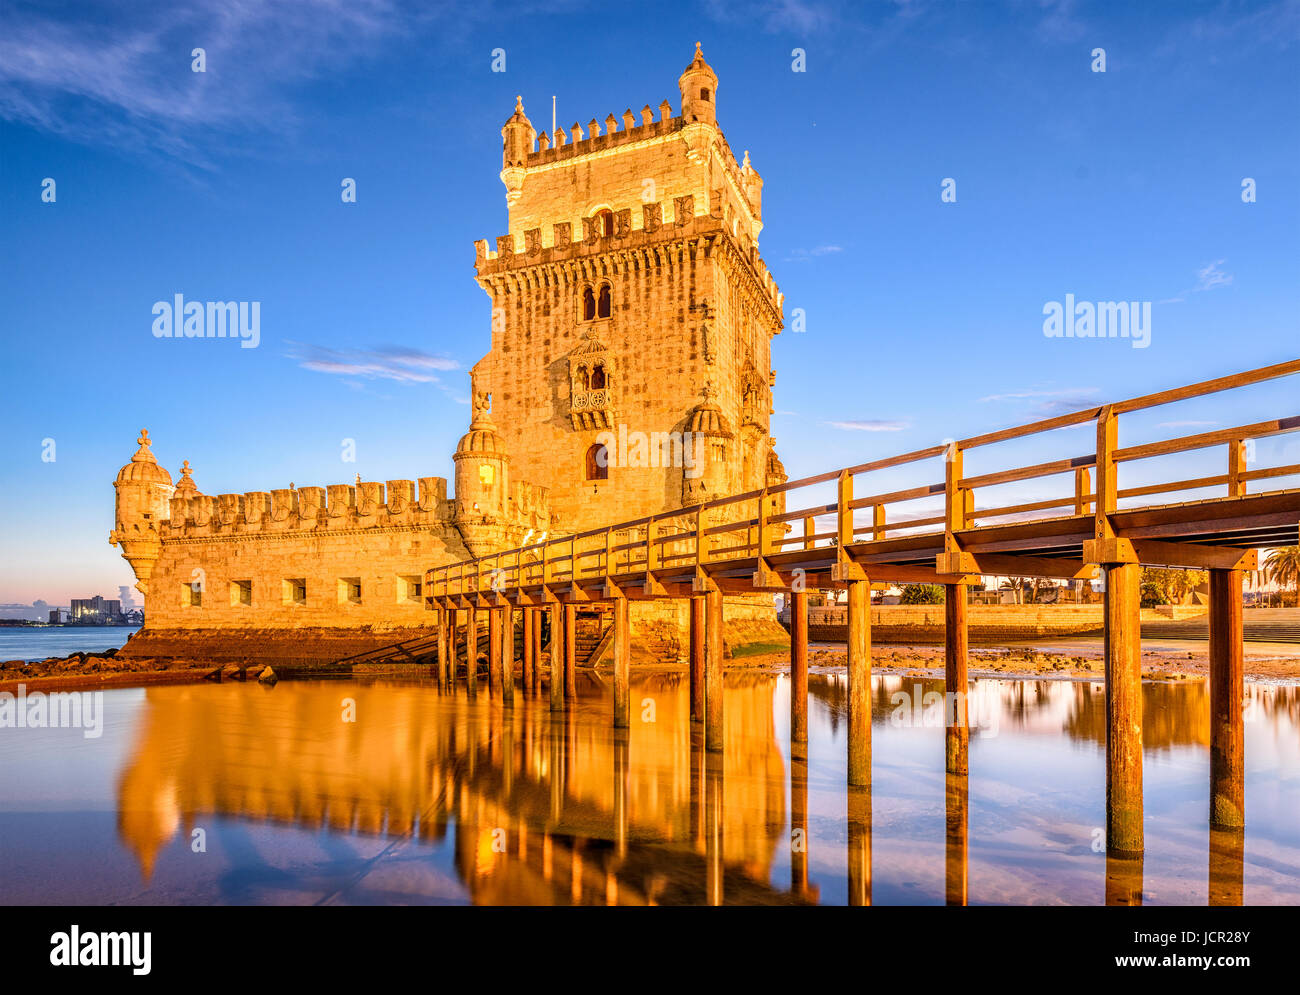 La Tour de Belém sur le Tage à Lisbonne, Portugal. Photo Stock